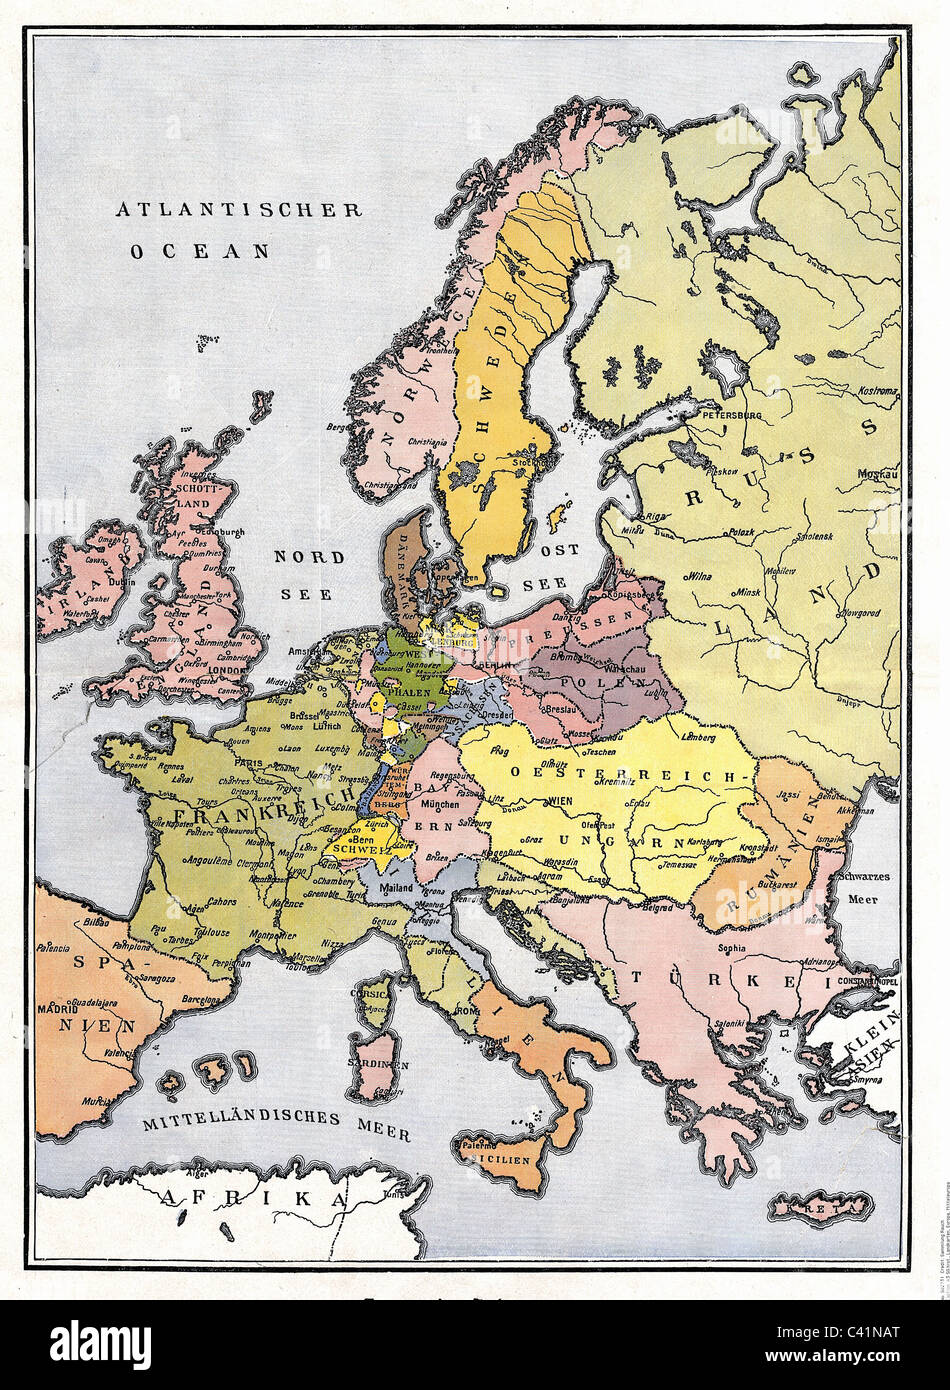 map, Europe, Central Europe 1809, Additional-Rights-Clearences-NA - Stock Image